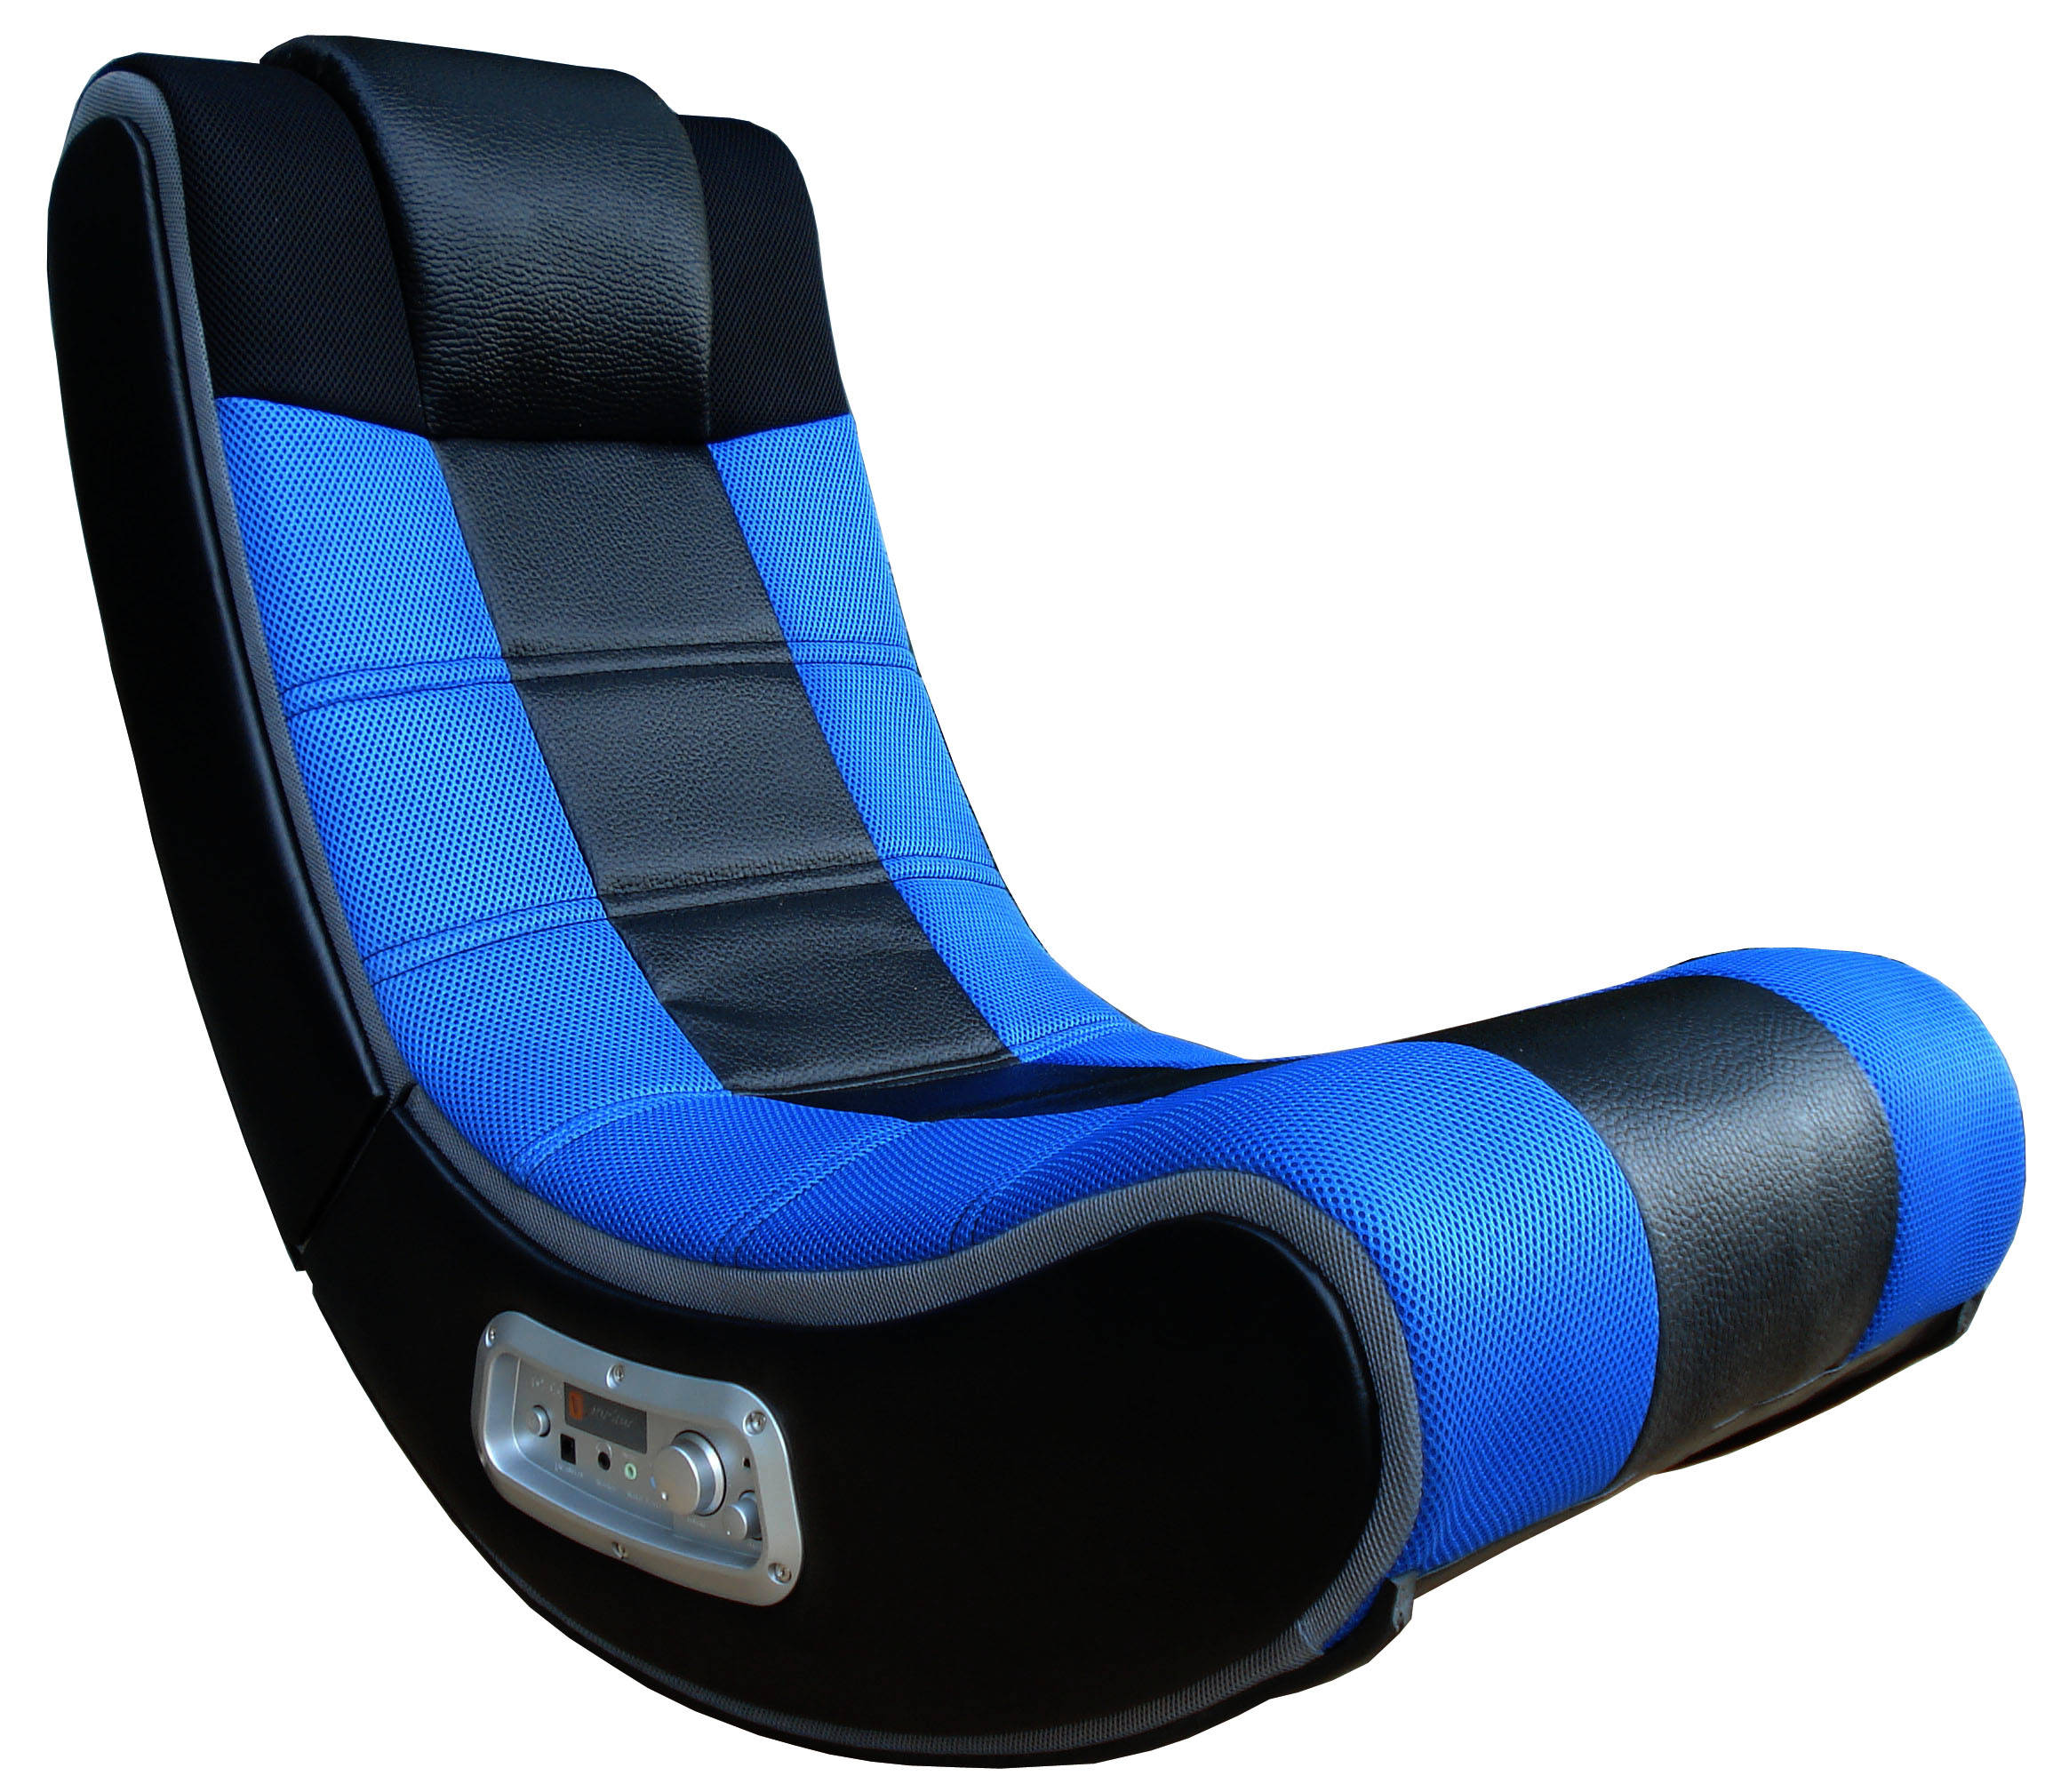 44894133 besides 28911205 additionally 17167608 furthermore 46271127 together with Product detail php. on x rocker pedestal 2 1 wireless sound gaming chair black 51274